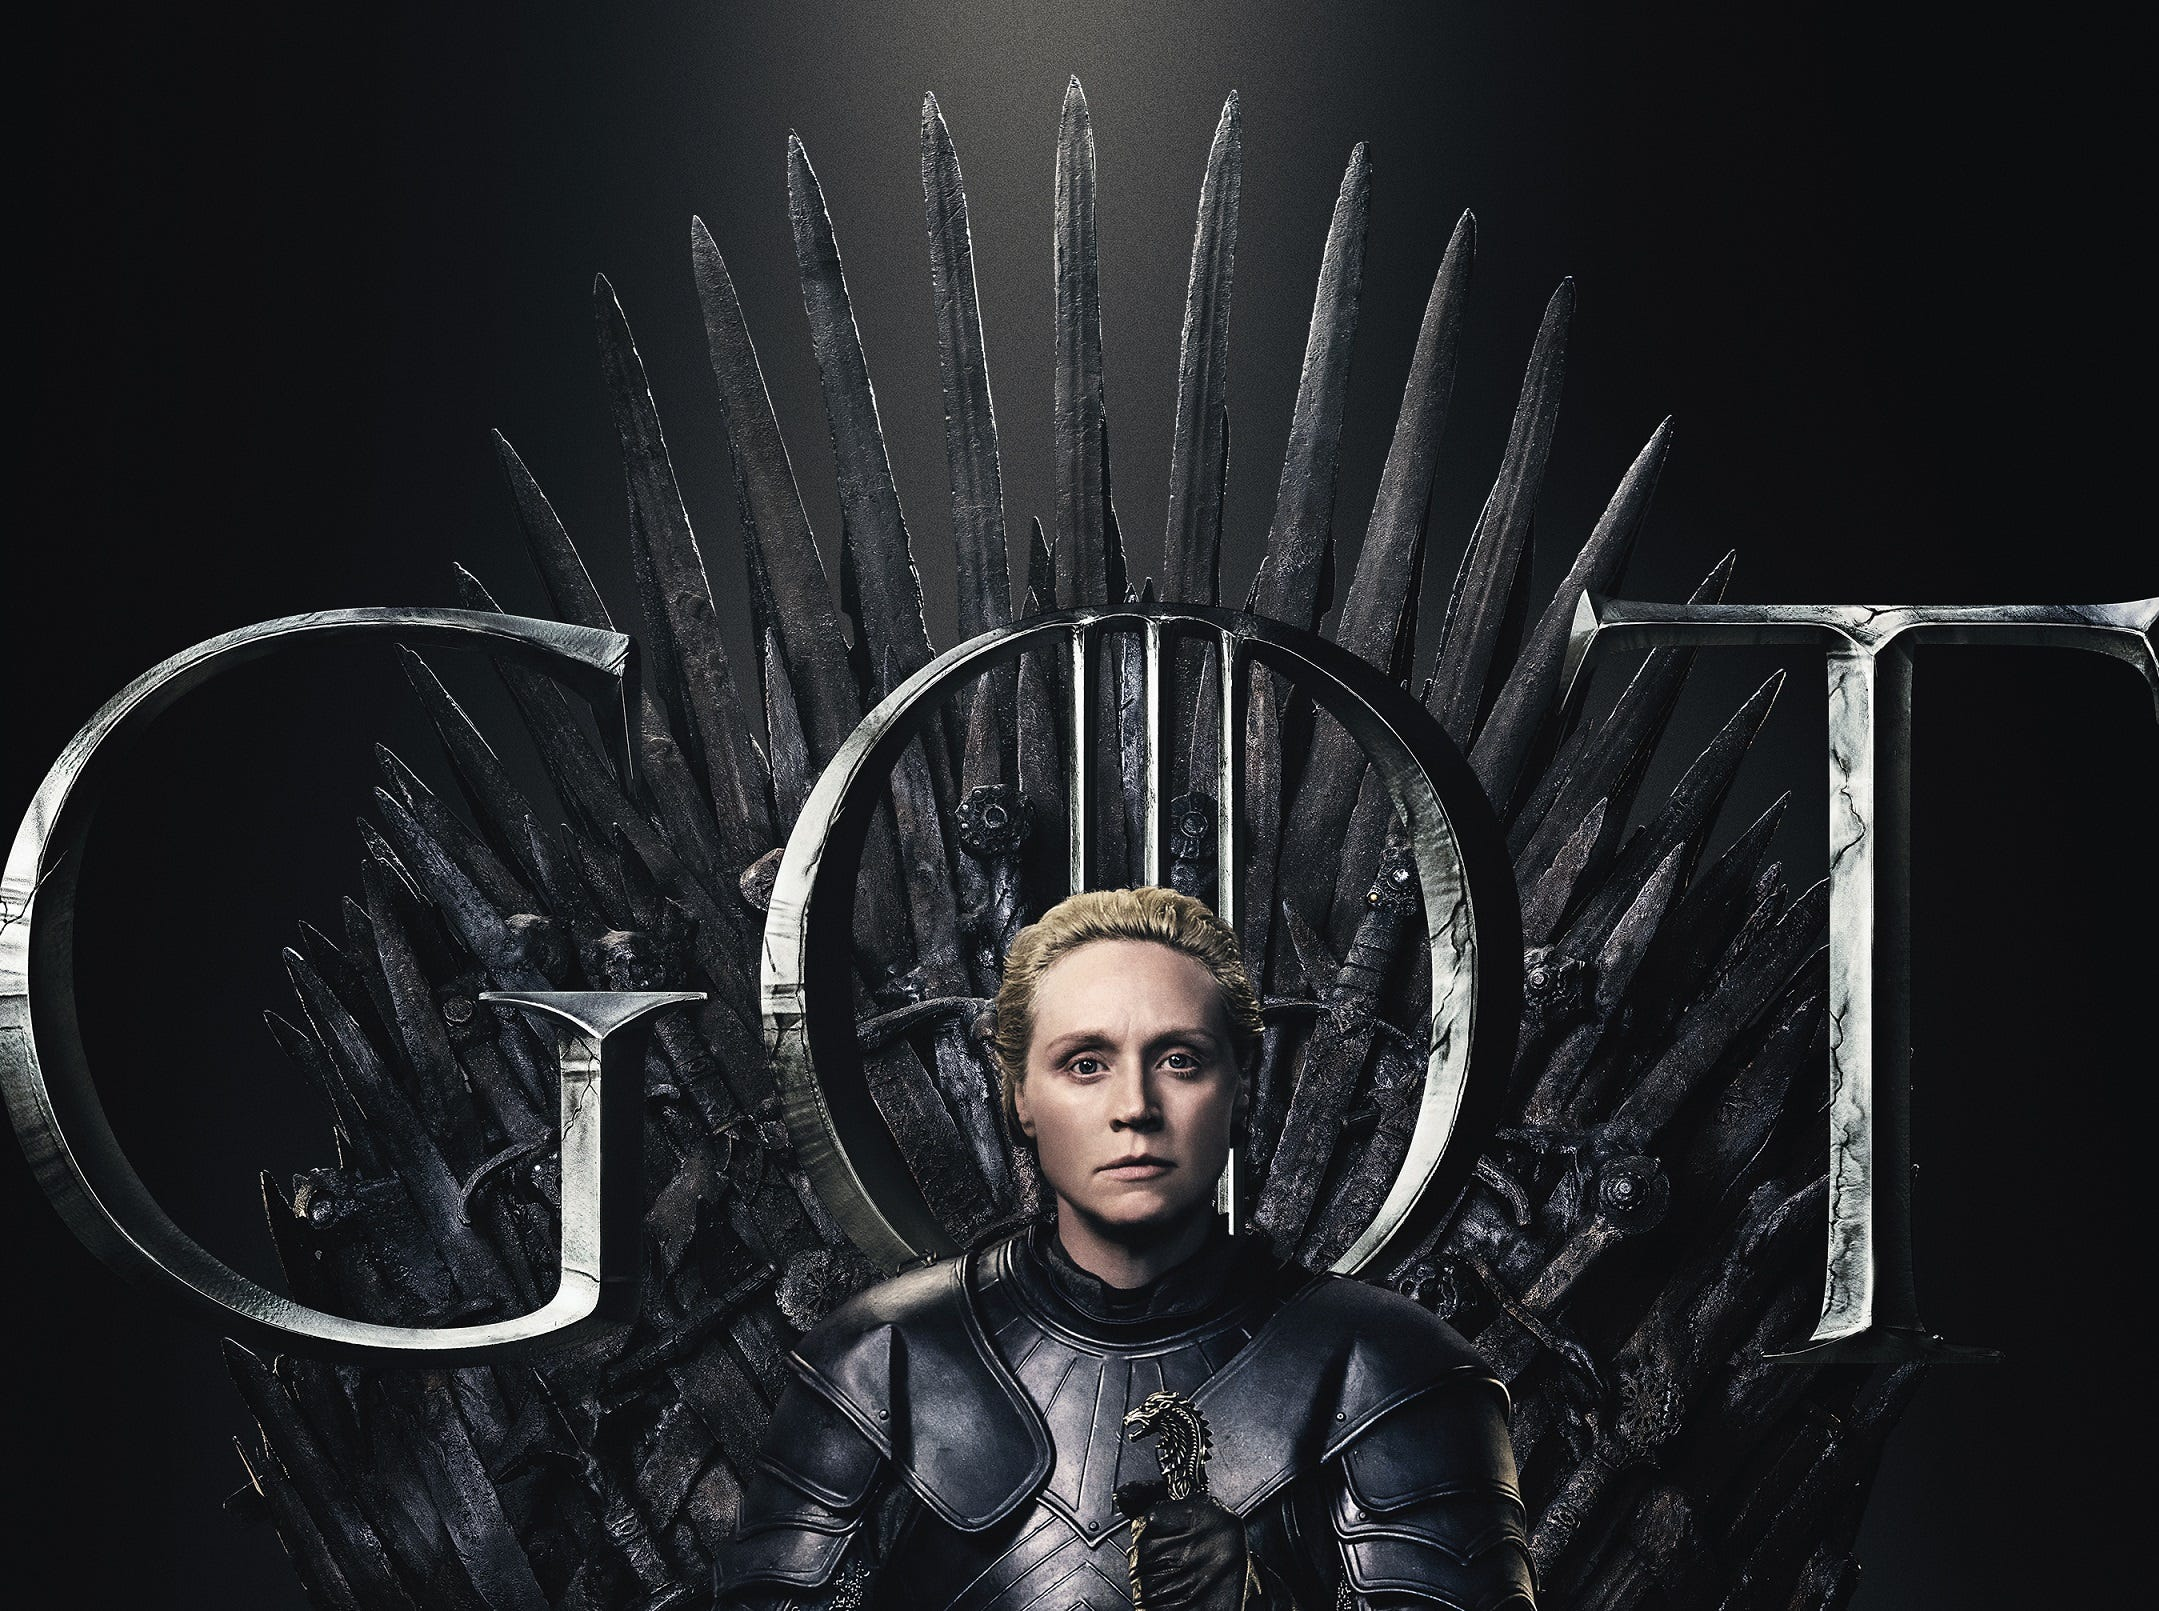 Not looking concerned is Brienne of Tarth (Gwendoline Christie).